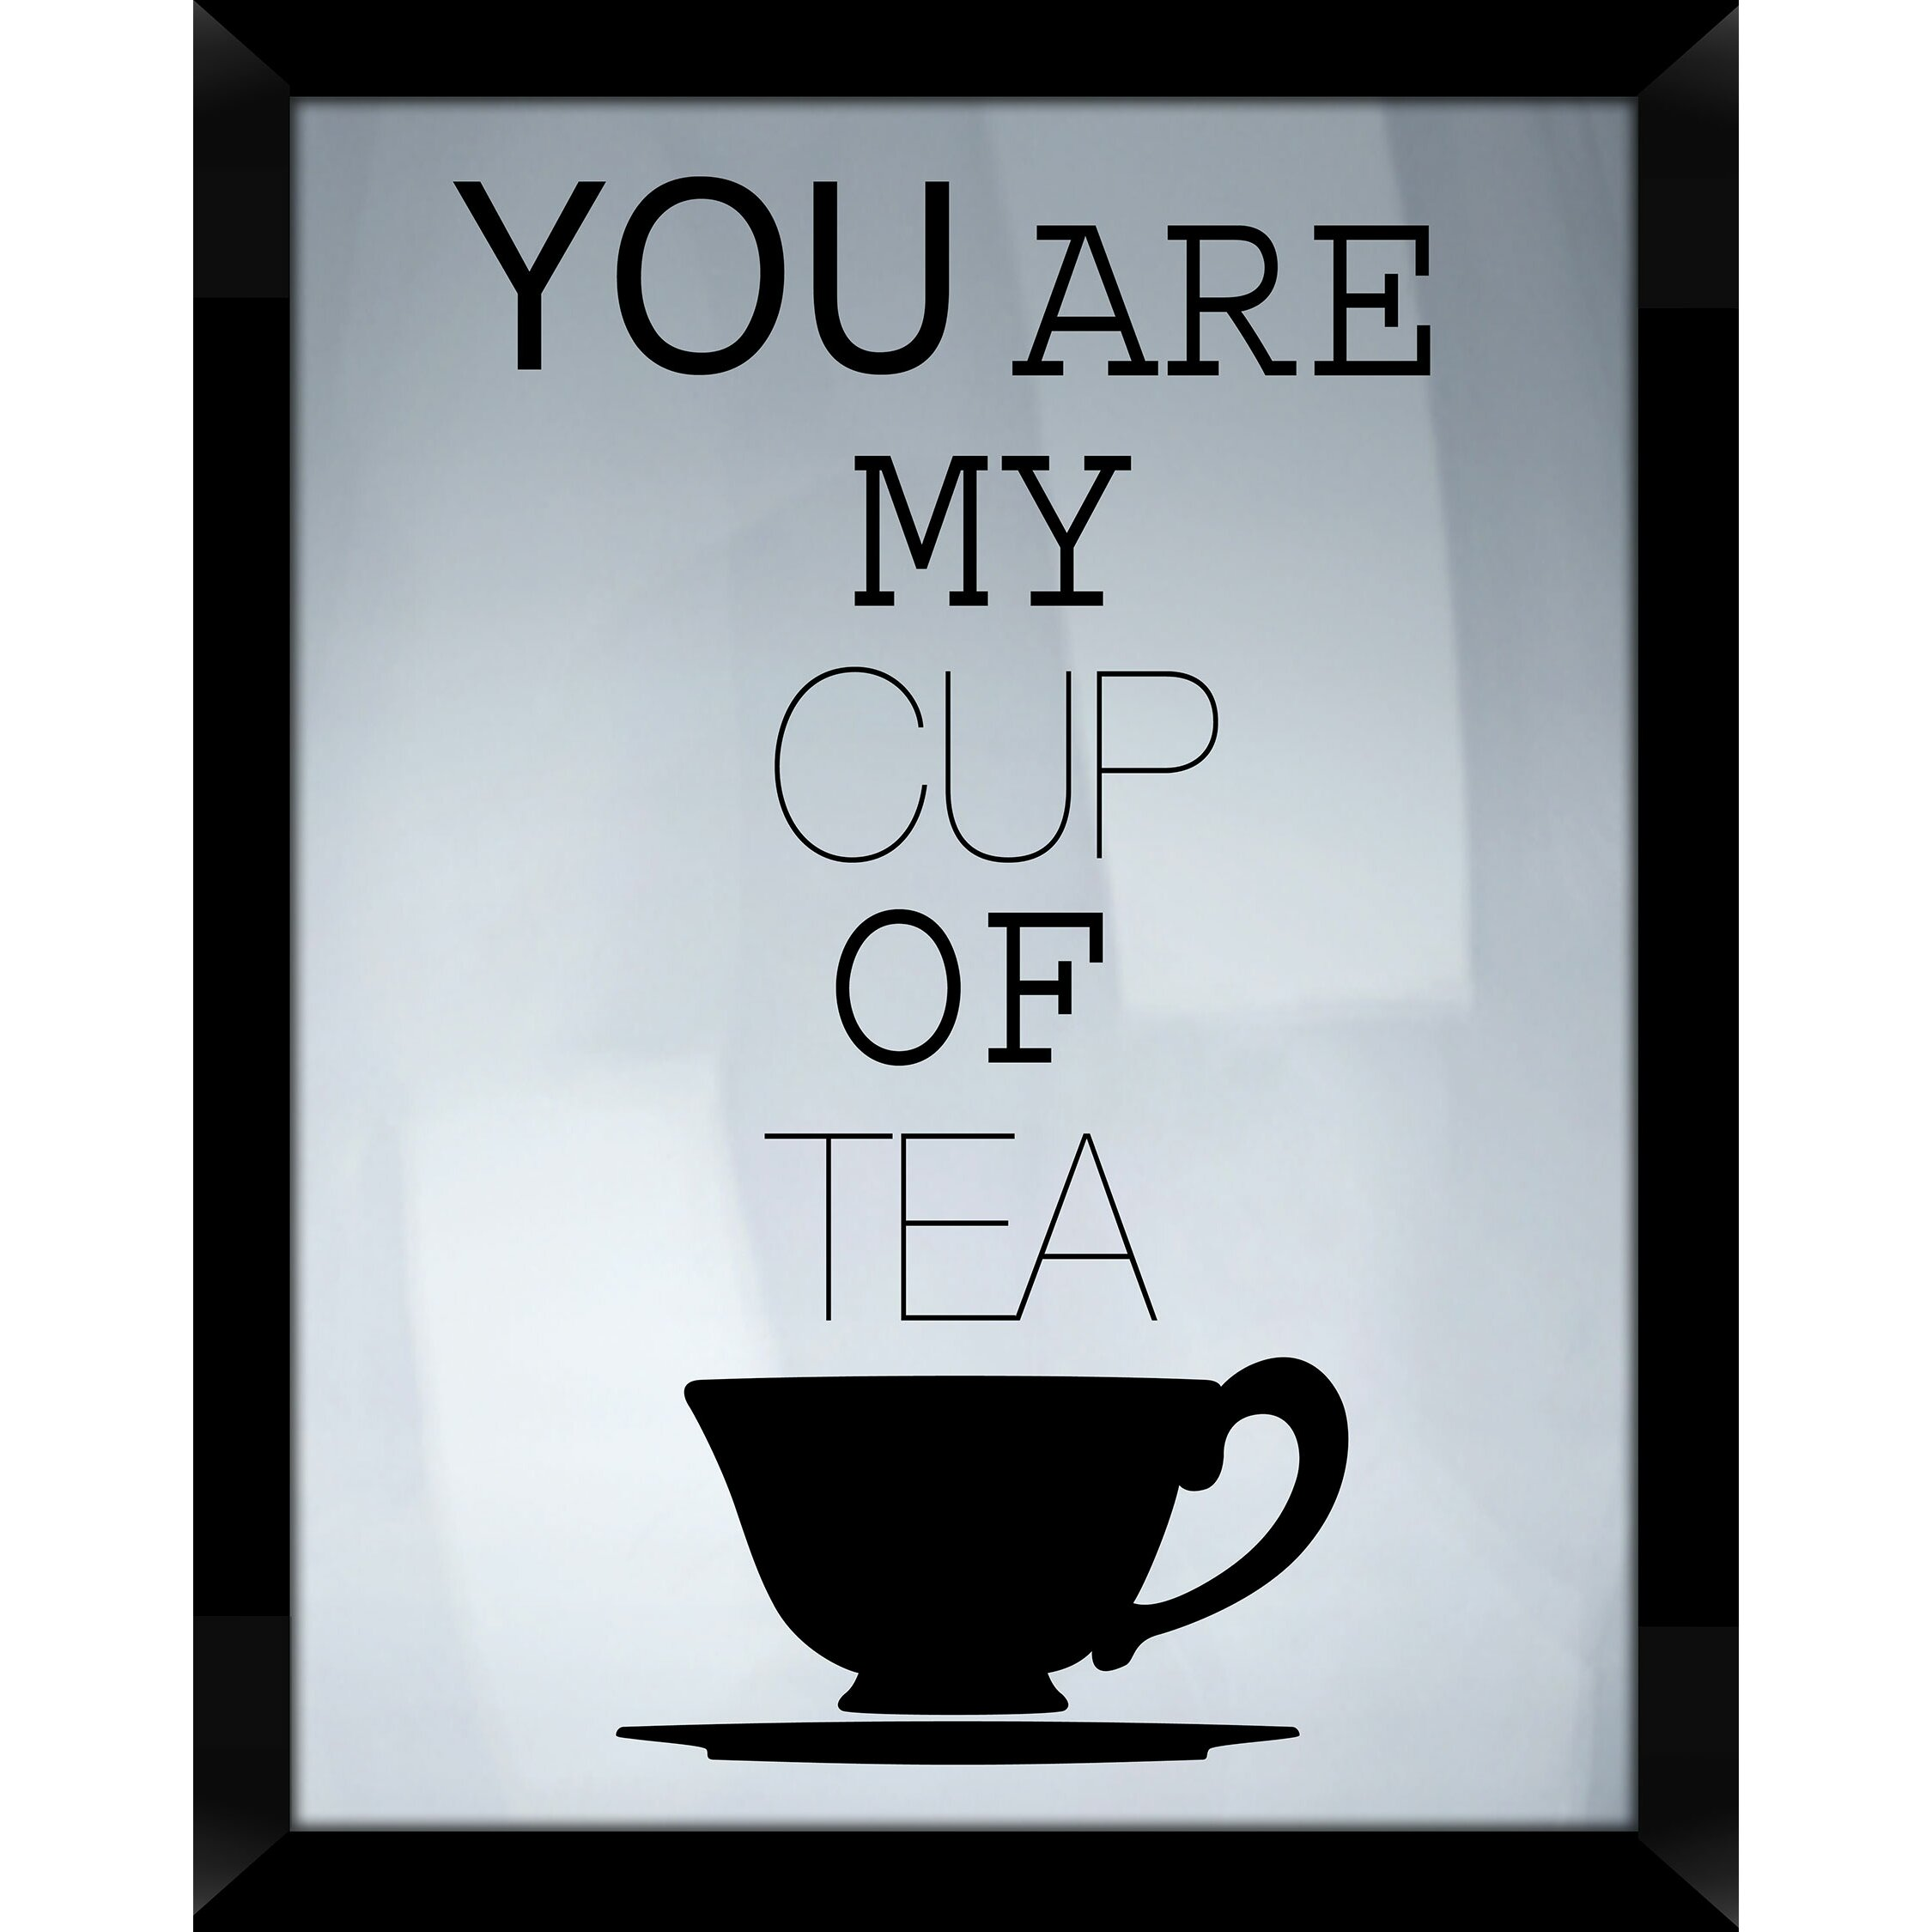 ptm images you are my cup of tea framed textual art wayfair. Black Bedroom Furniture Sets. Home Design Ideas